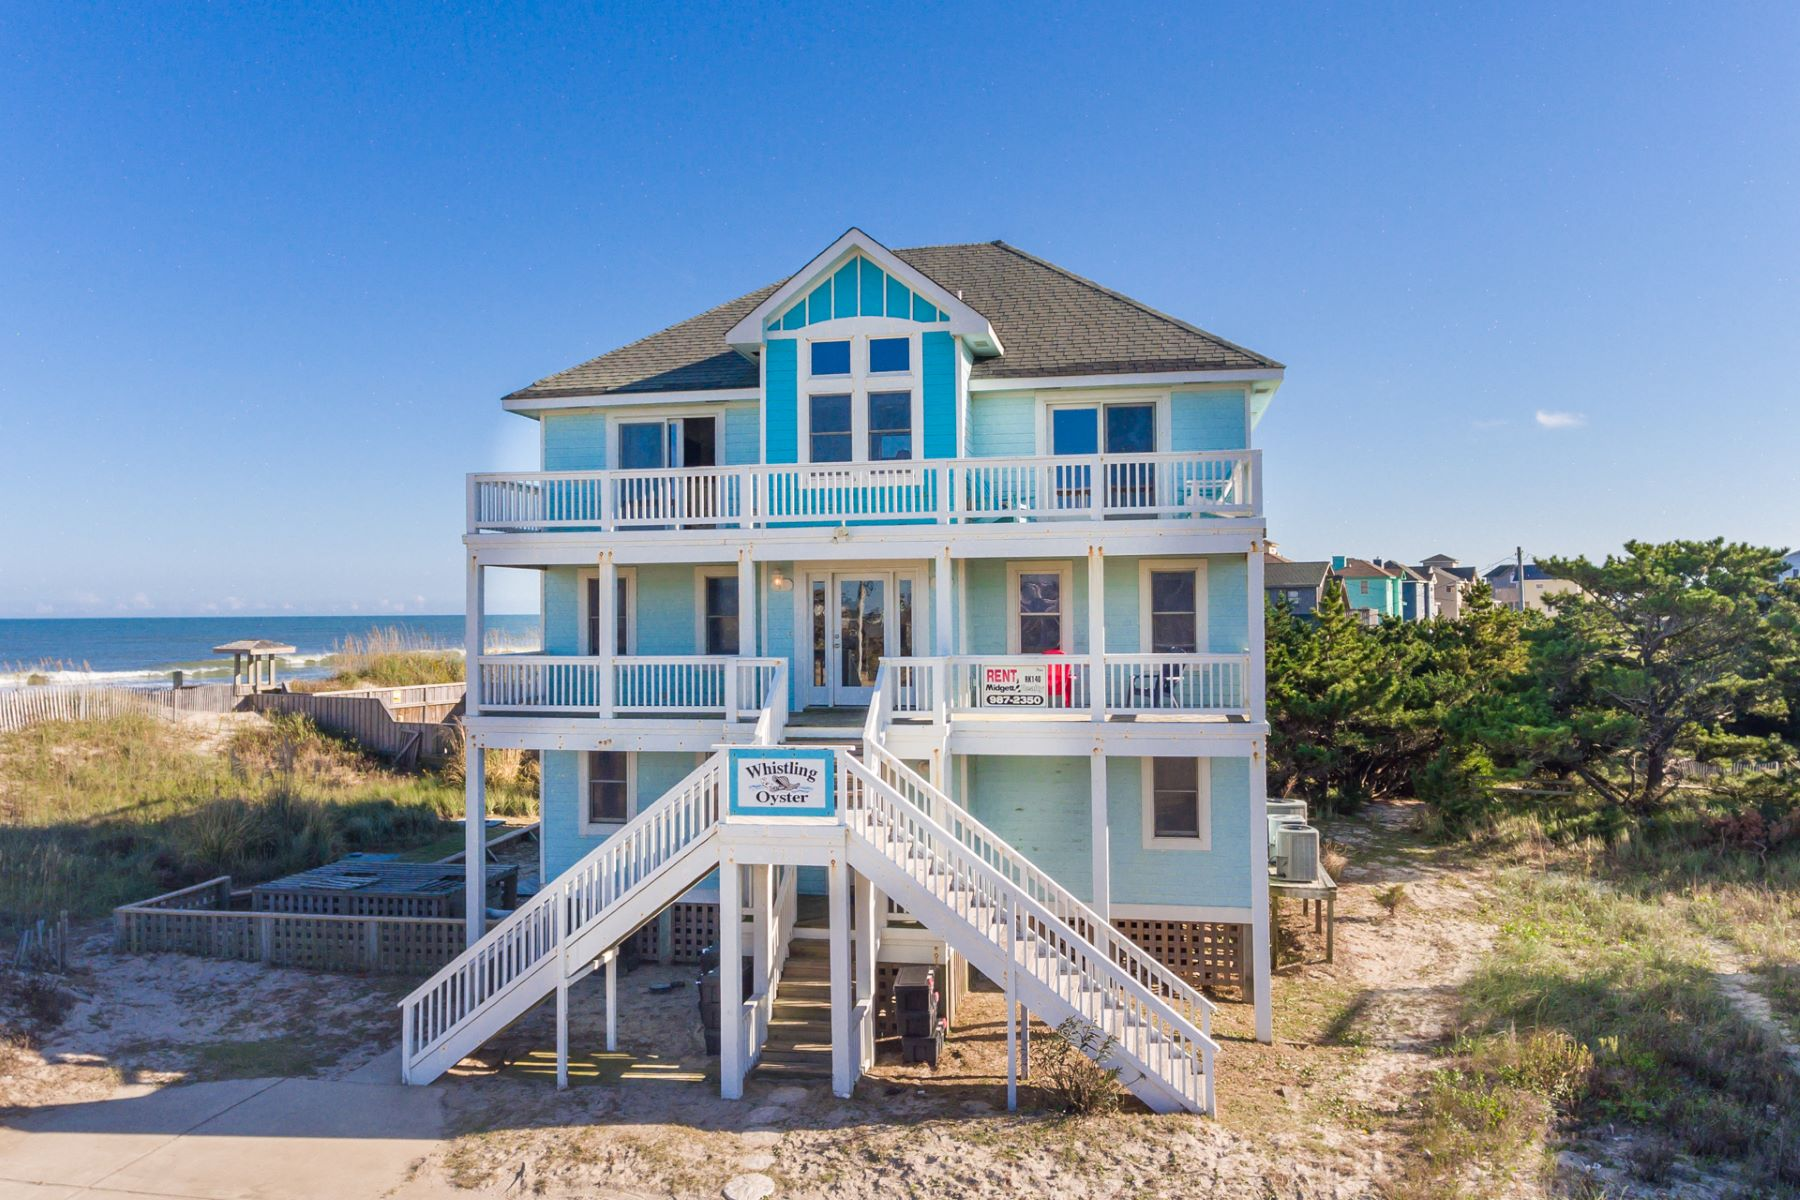 Single Family Home for Active at Whistling Oyster 24271 Ocean Drive Rodanthe, North Carolina 27968 United States